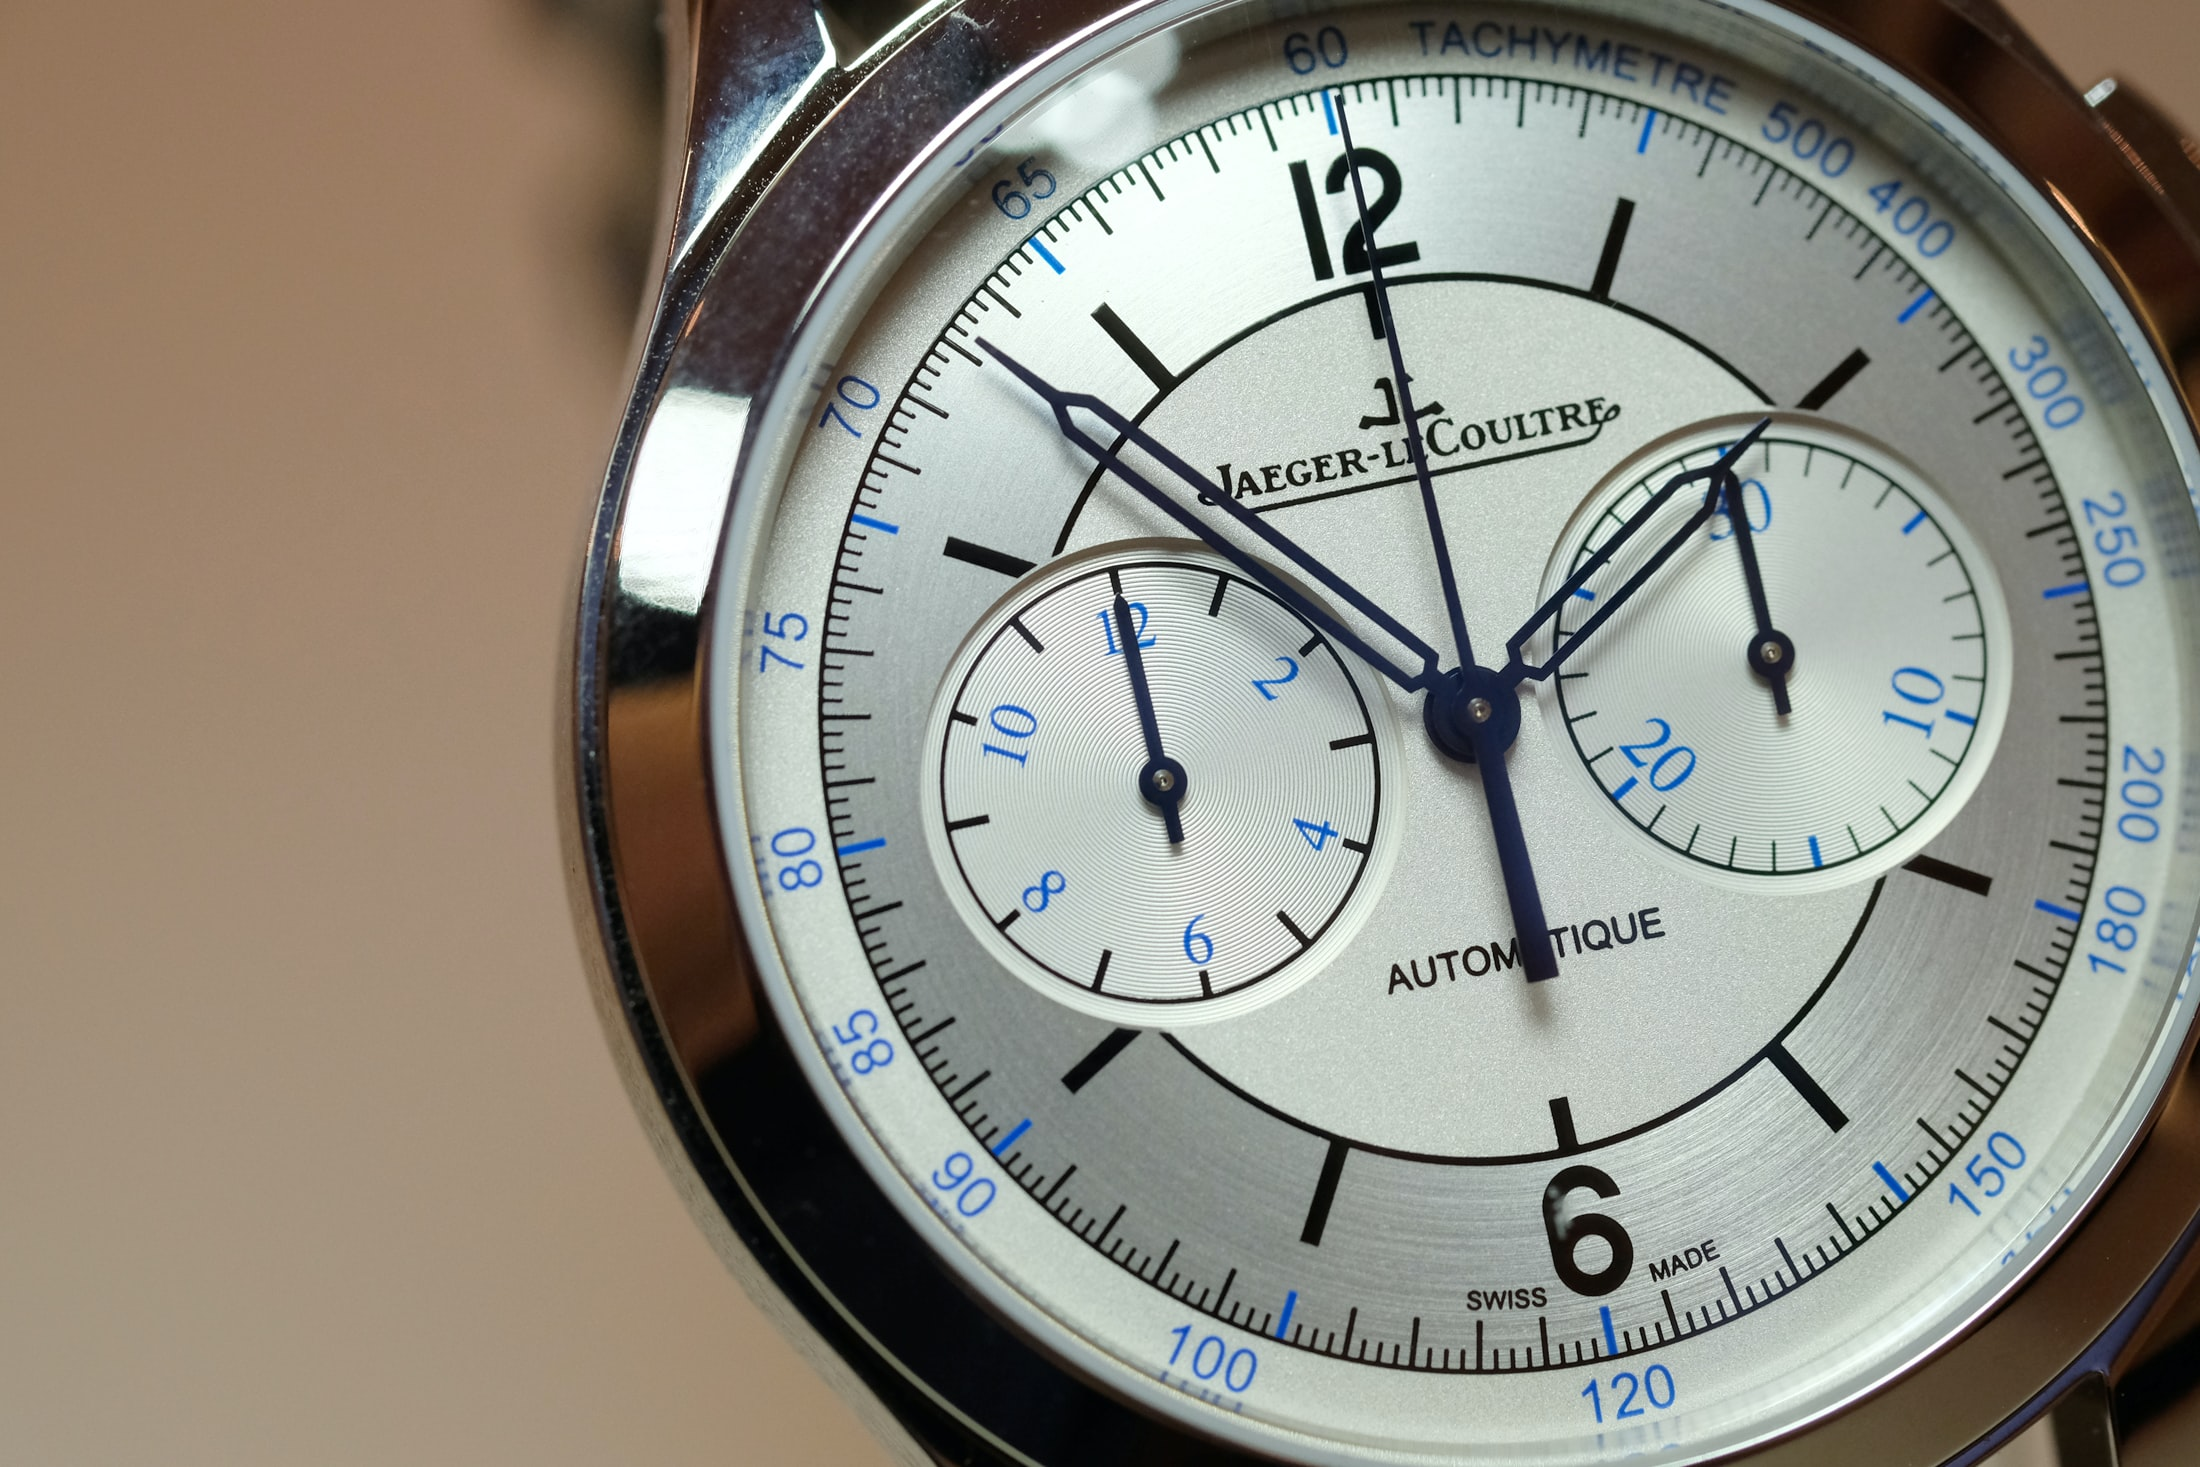 Introducing: The Jaeger-LeCoultre Master Control Collection With Sector Dials (Live Pics + Pricing) Introducing: The Jaeger-LeCoultre Master Control Collection With Sector Dials (Live Pics + Pricing) sector 04